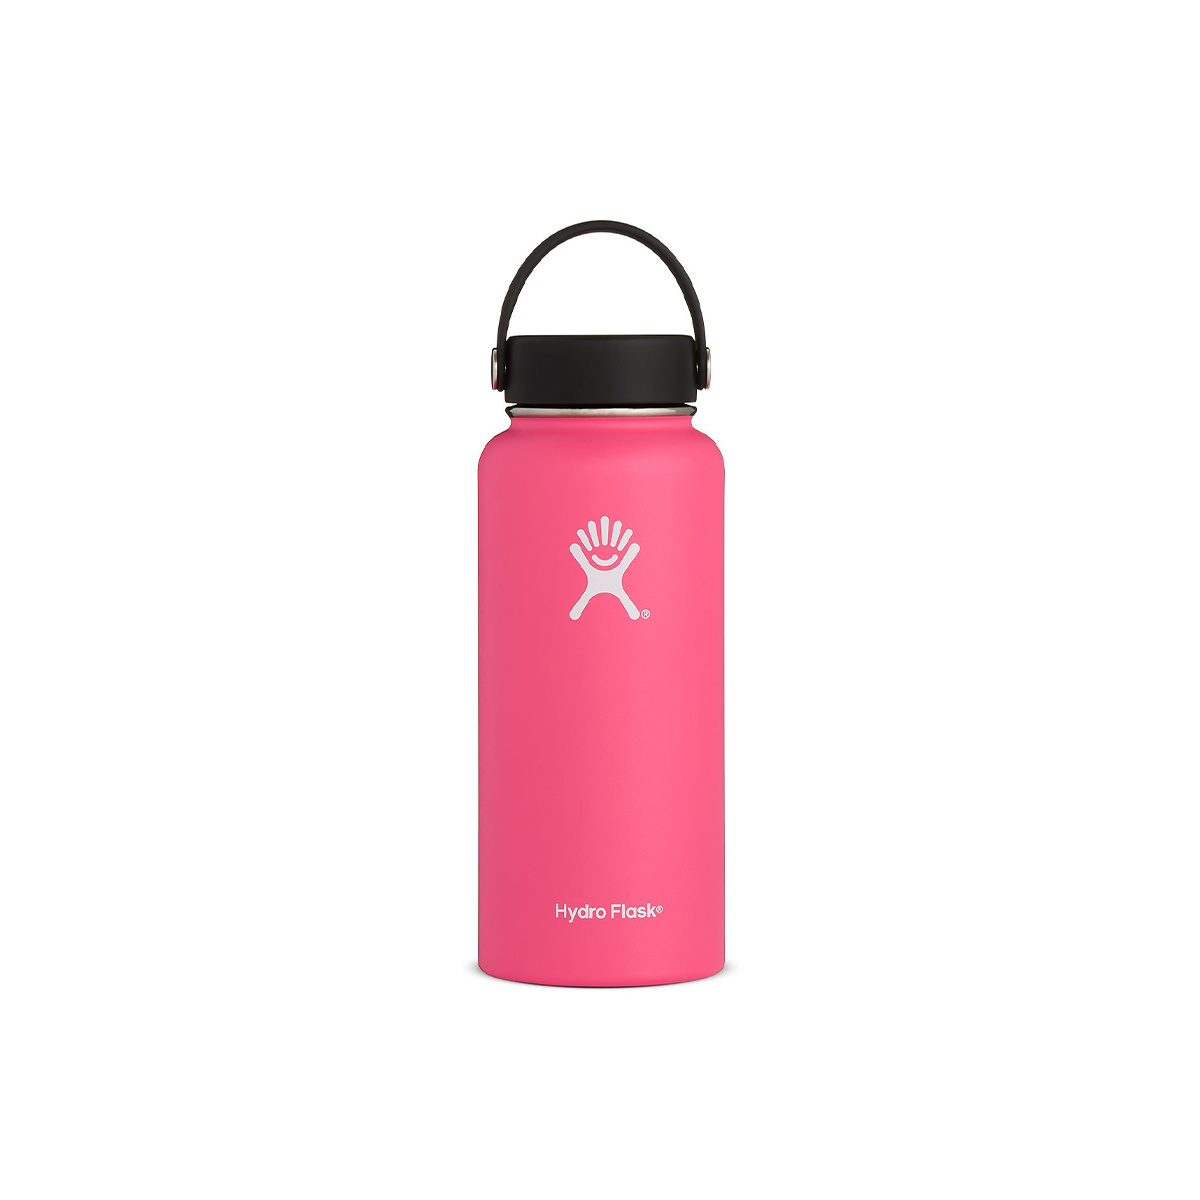 Hydro Flask Hydro Flask 32 oz Wide Mouth